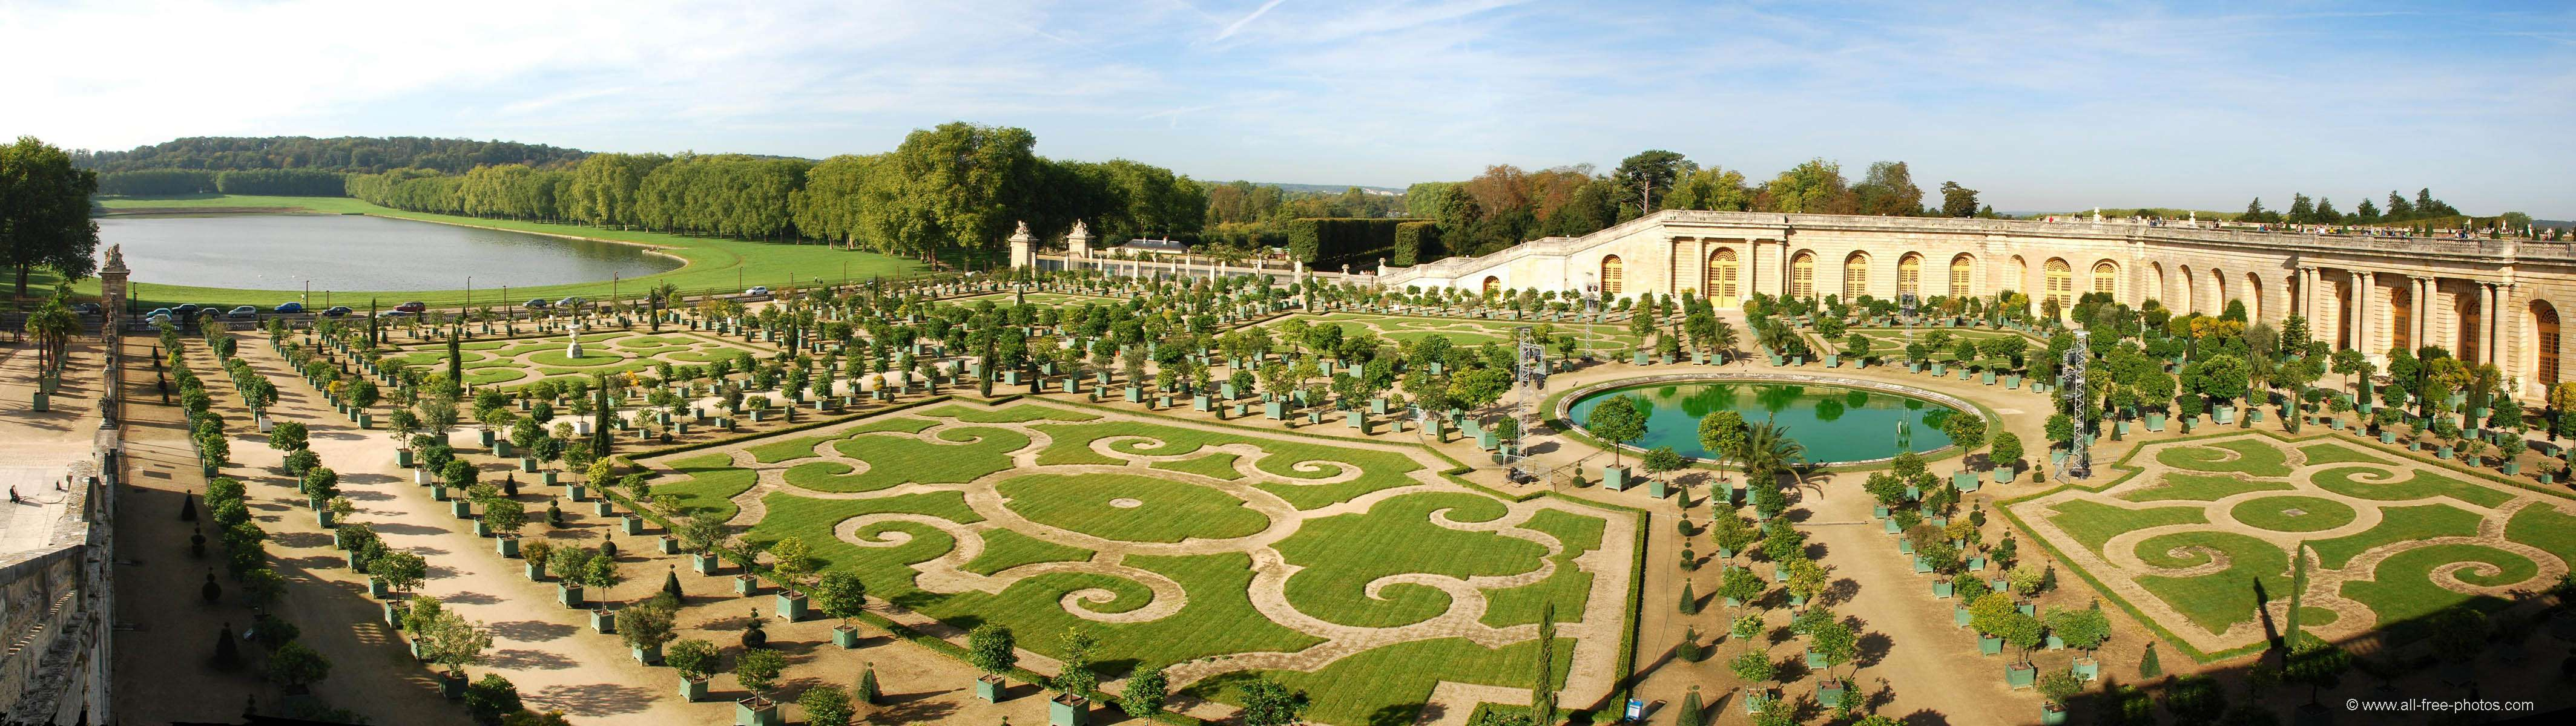 The orangery - Castle of Versailles - France